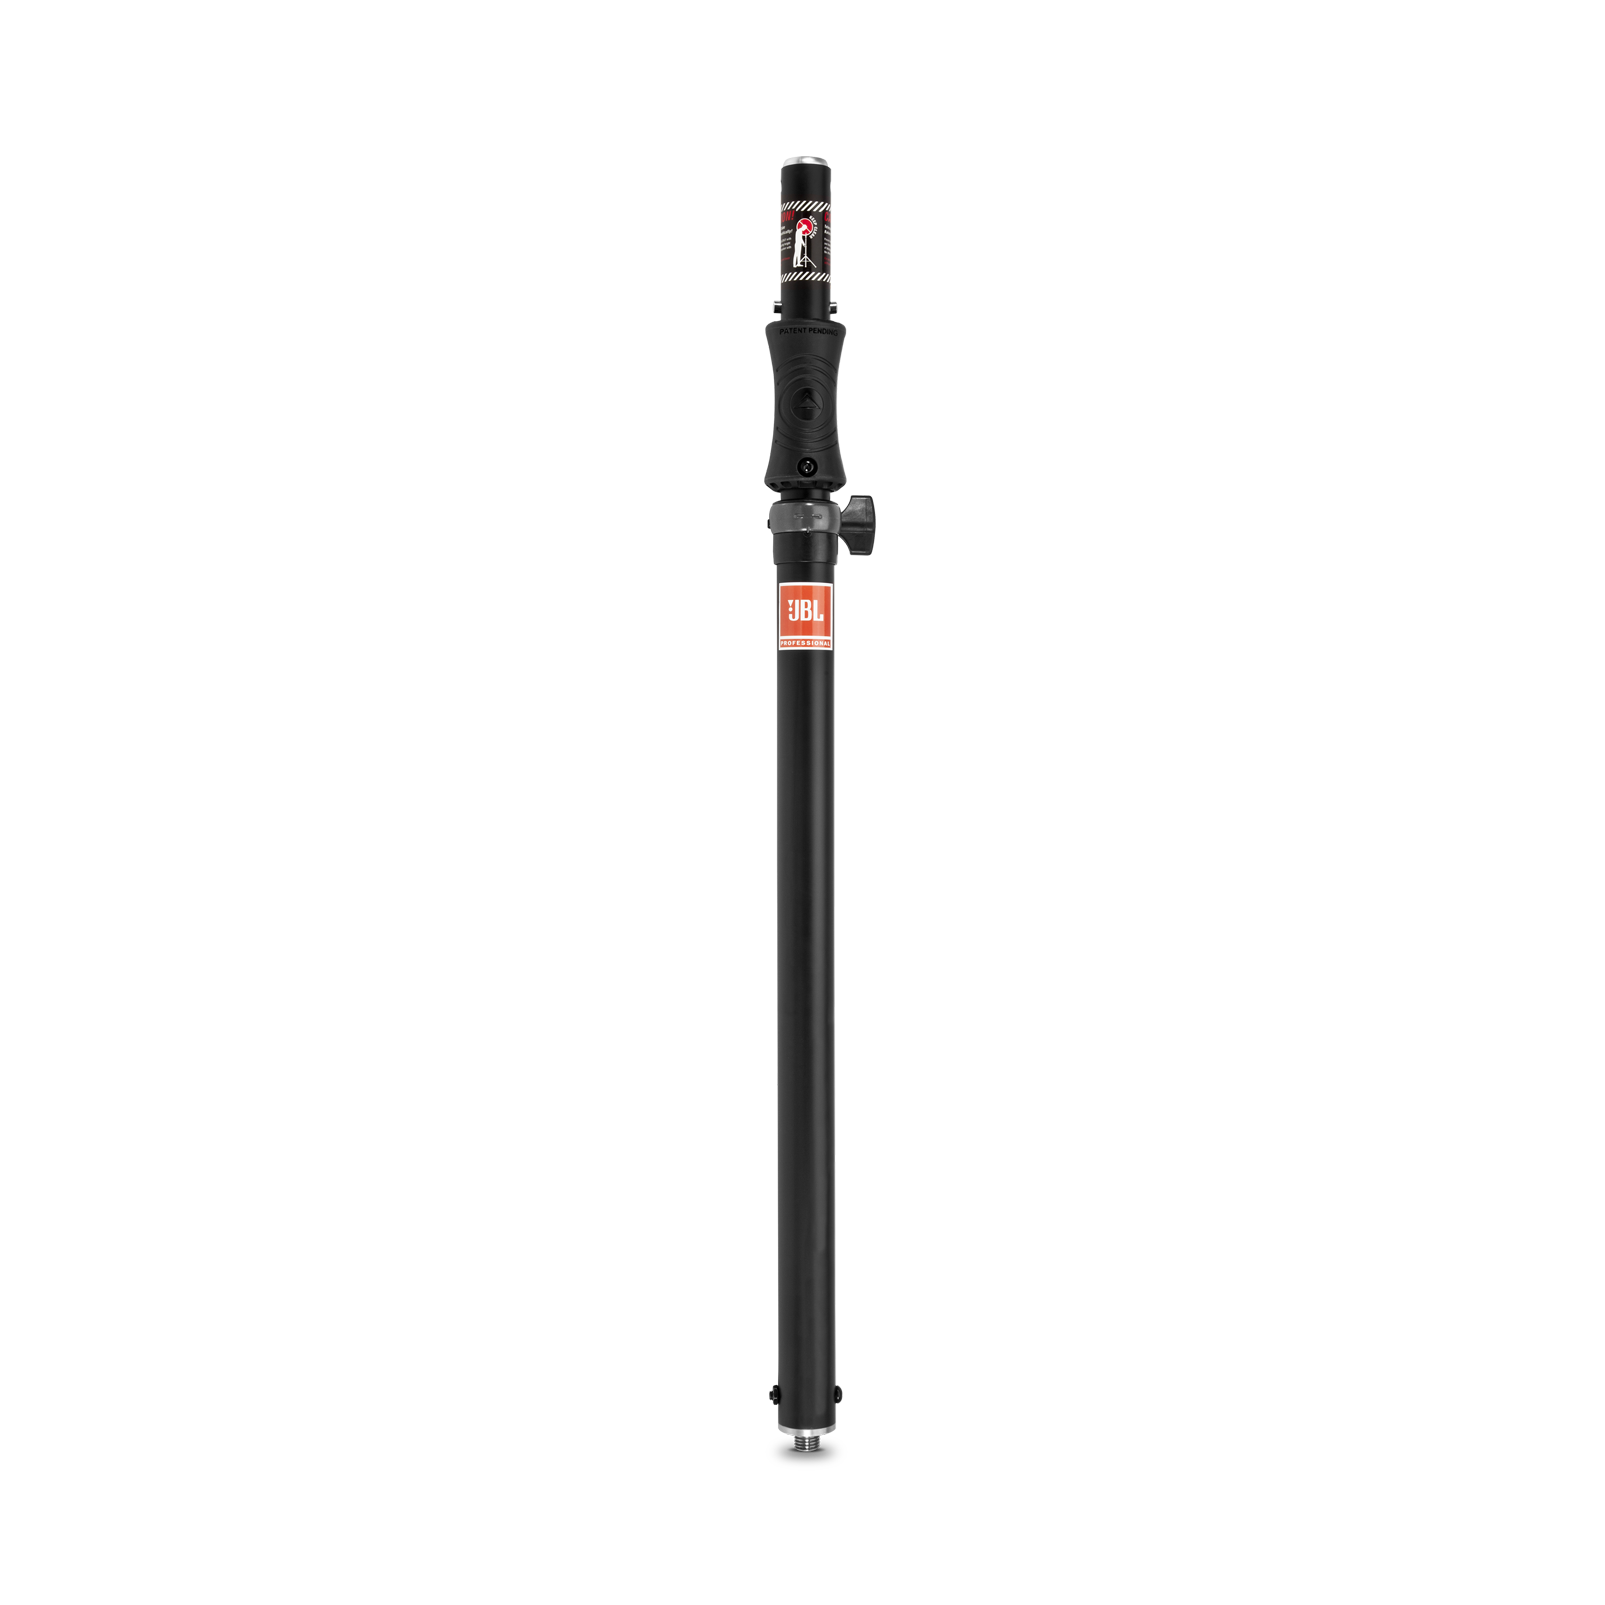 JBL Speaker Pole (Gas Assist)